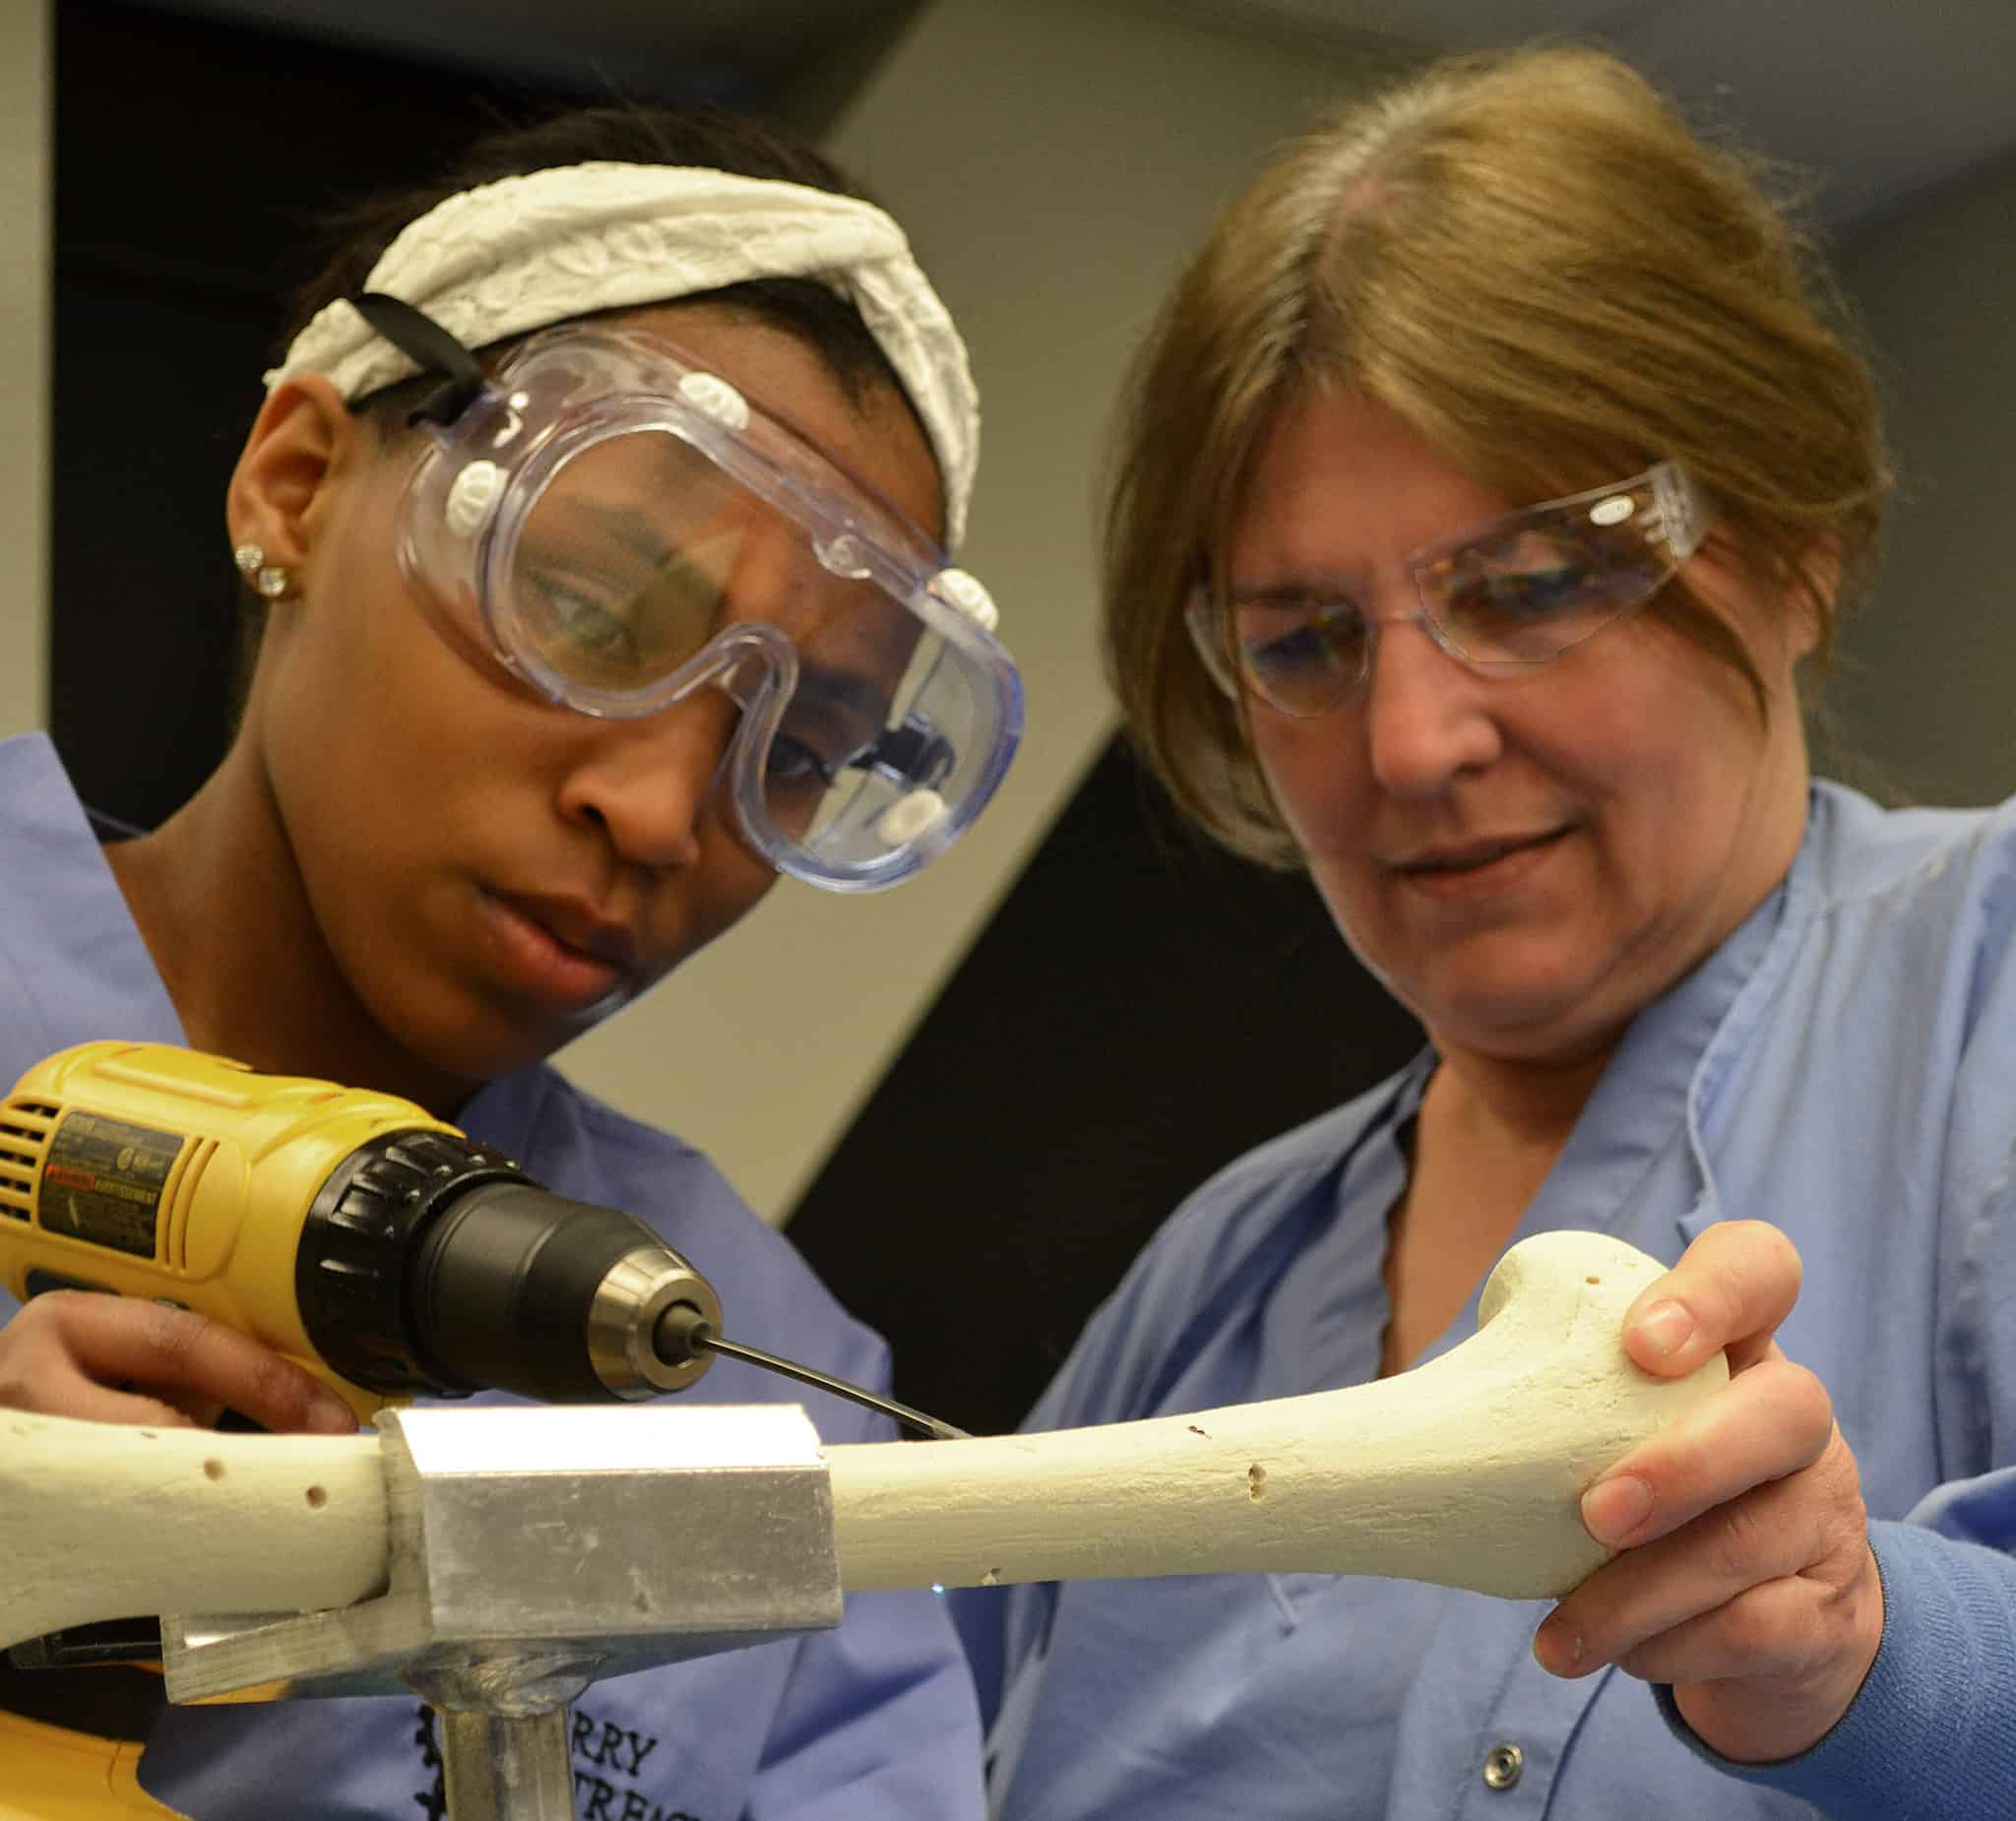 Faculty member working with student